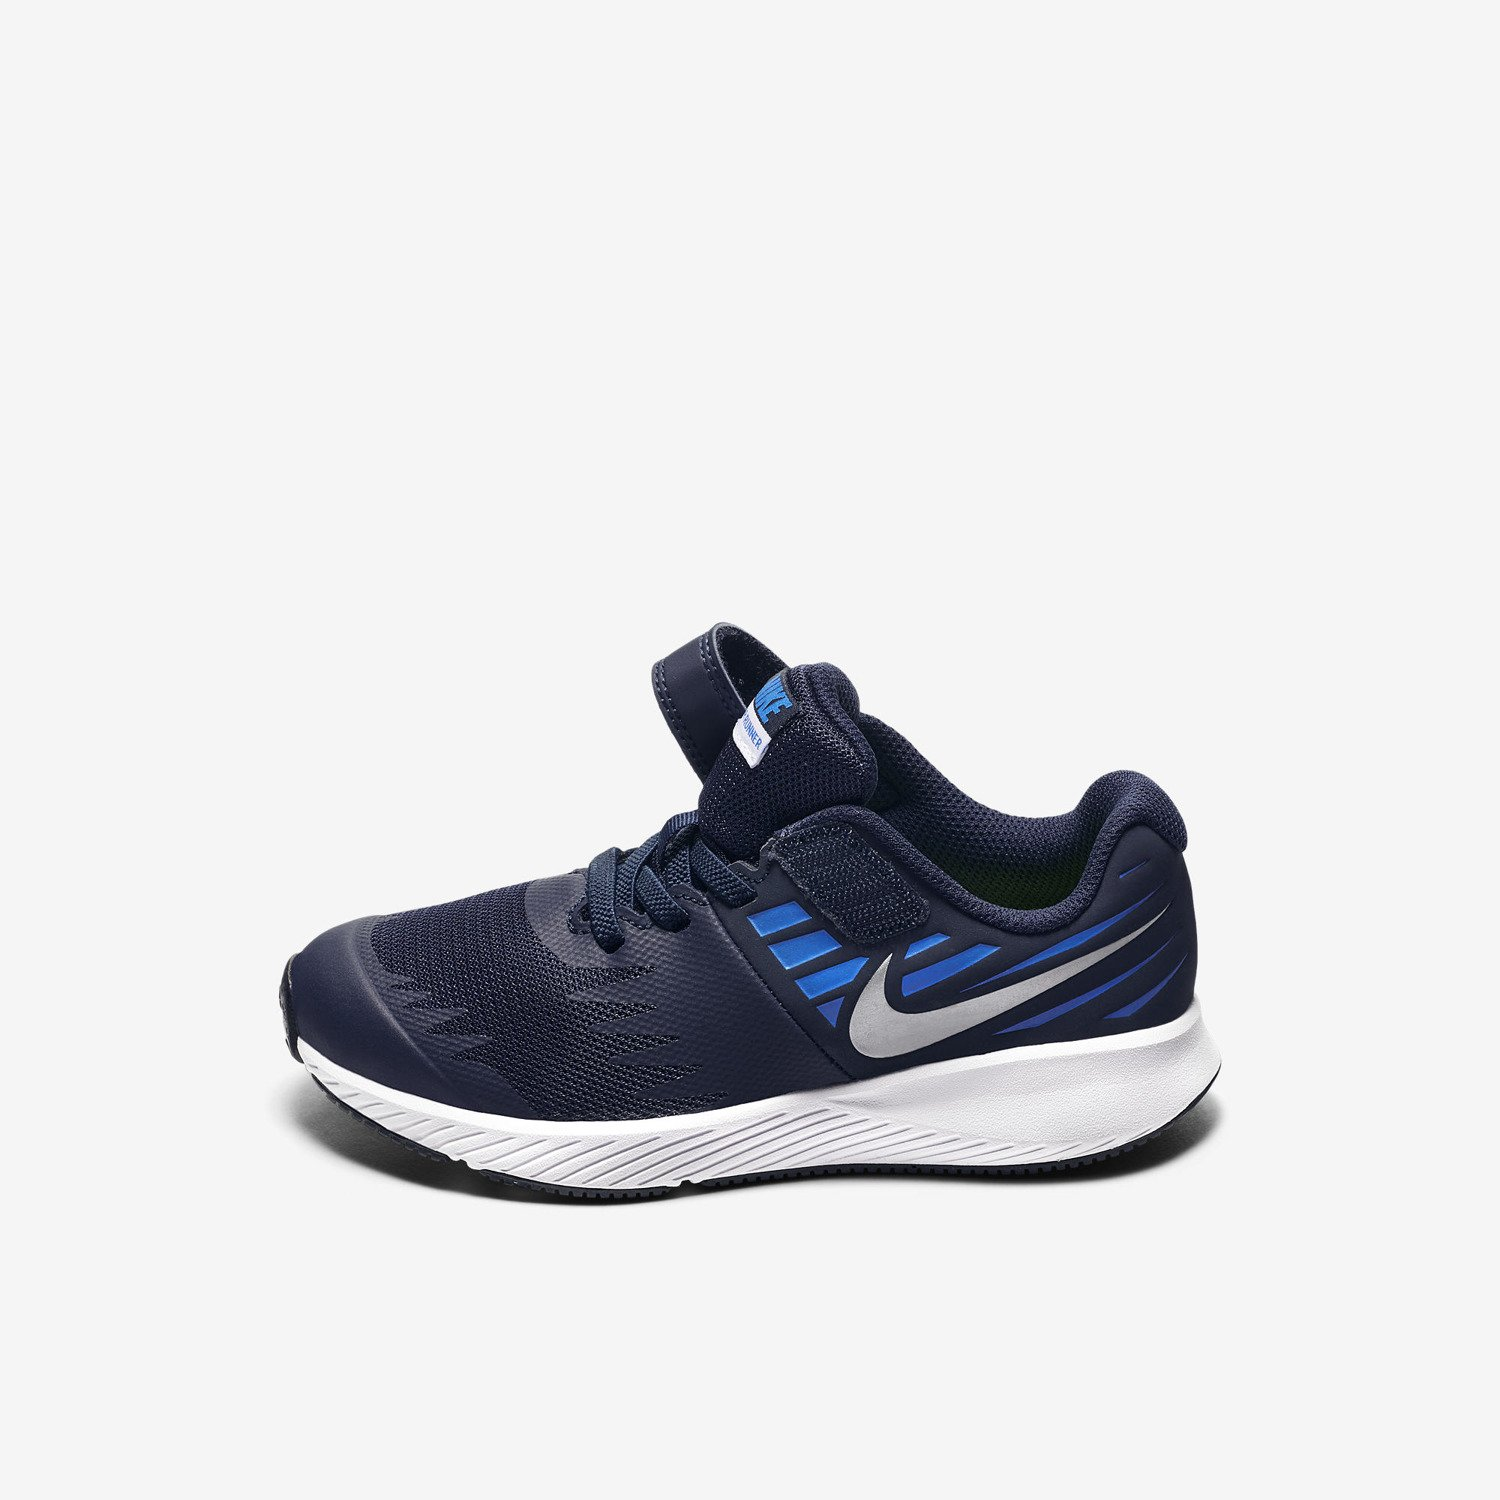 Buty juniorskie Nike Star Runner 921443 406